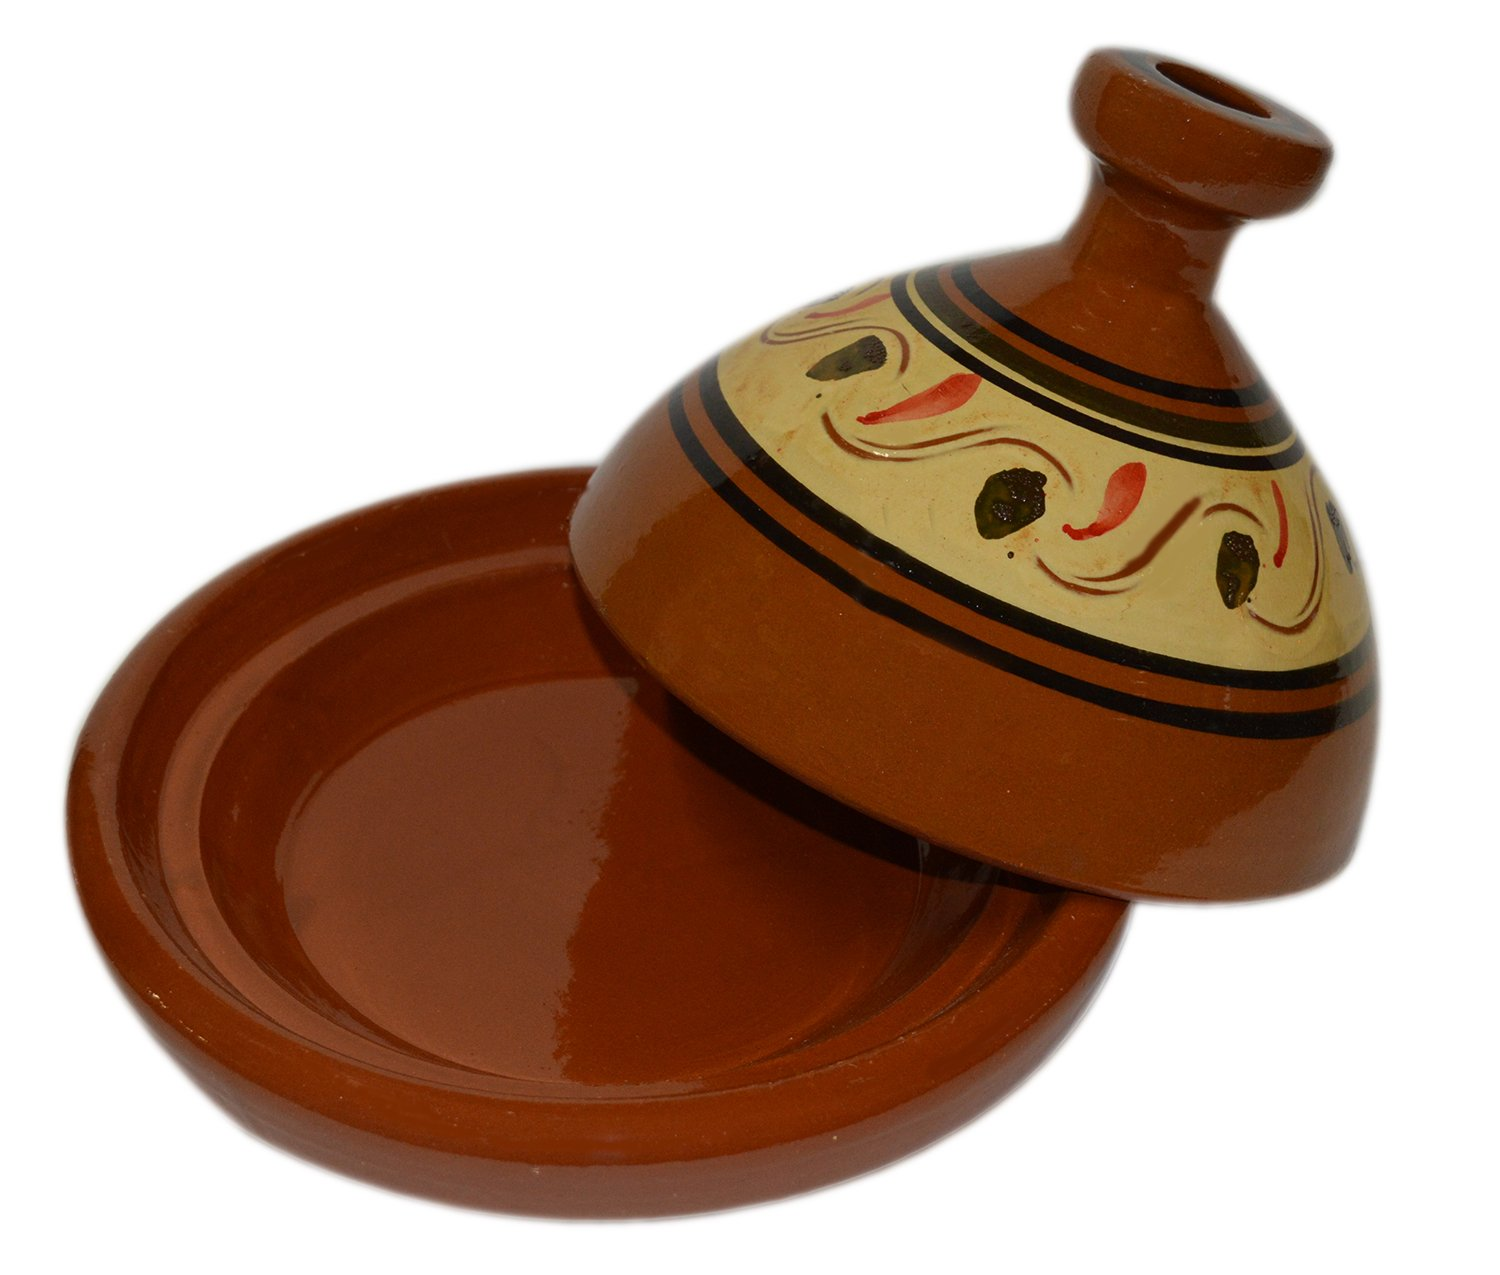 Moroccan Medium Simple Cooking Tagine Lead Free by Cooking Tagines (Image #3)